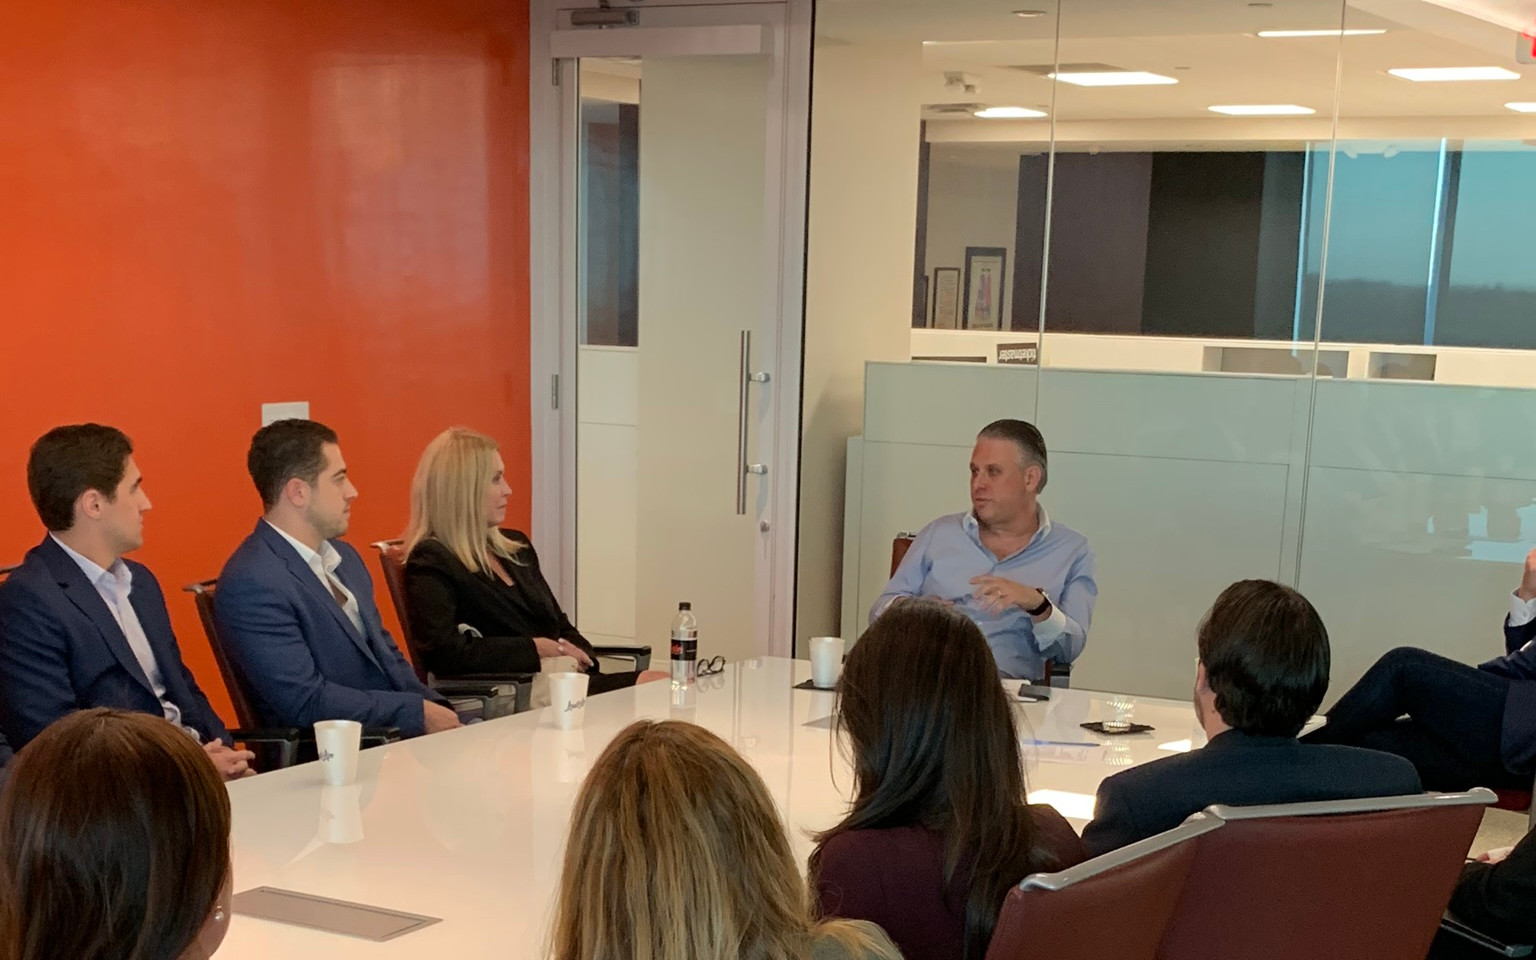 March 2019 FACE Roundtable for the Next Generation